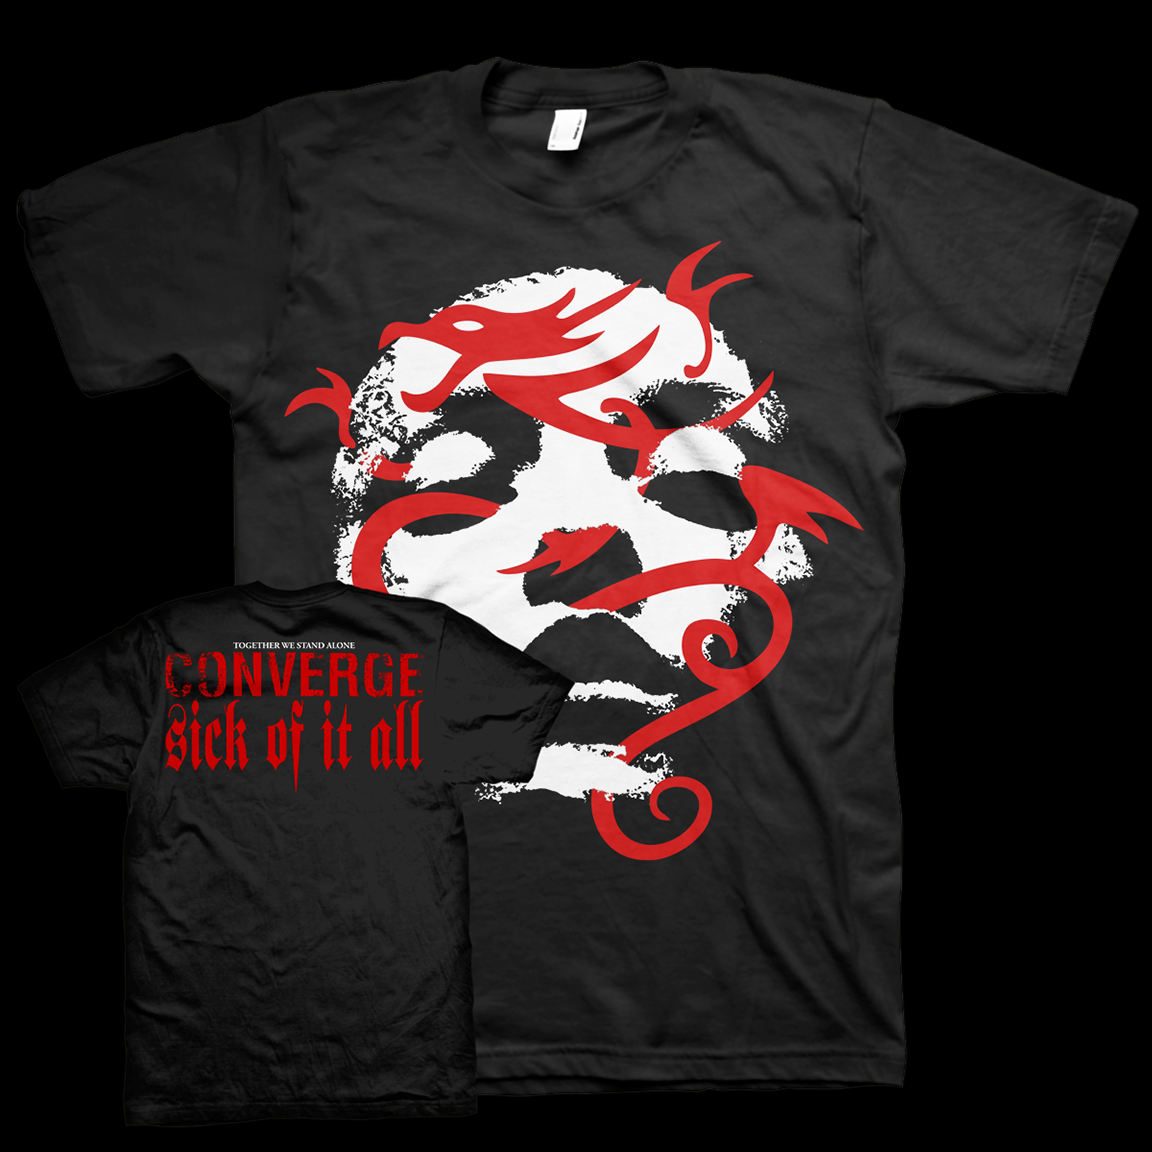 Converge x Sick of it All Mashup T-Shirt to Benefit Artists and Musicians in Need